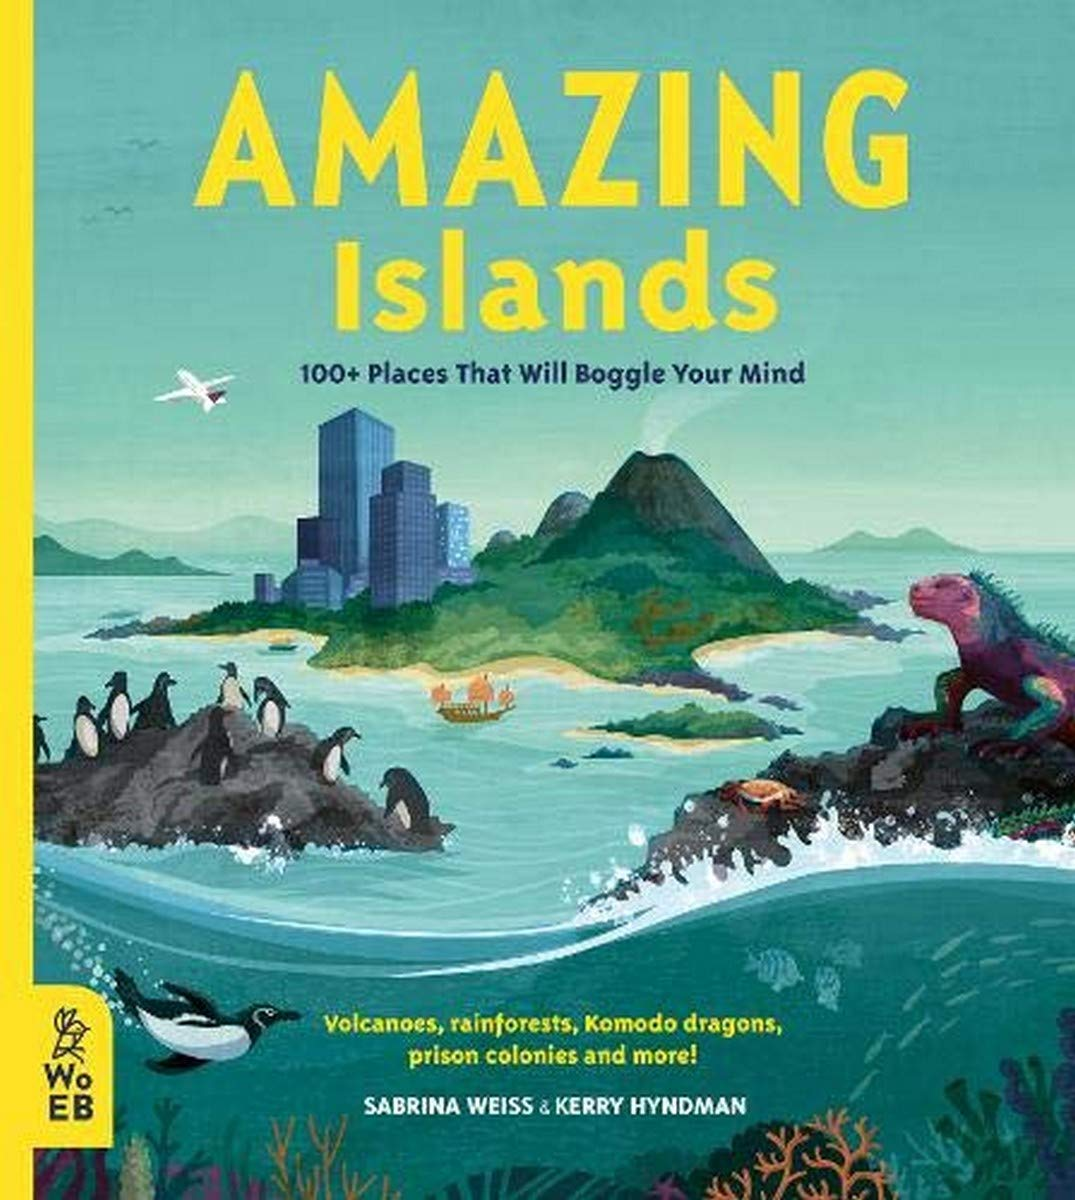 Amazing Islands: 100+ Places That Will Boggle Your Mind (Our Amazing  World): Amazon.co.uk: Sabrina Weiss, Kerry Hyndman, Kerry Hyndman:  9781912920150: Books